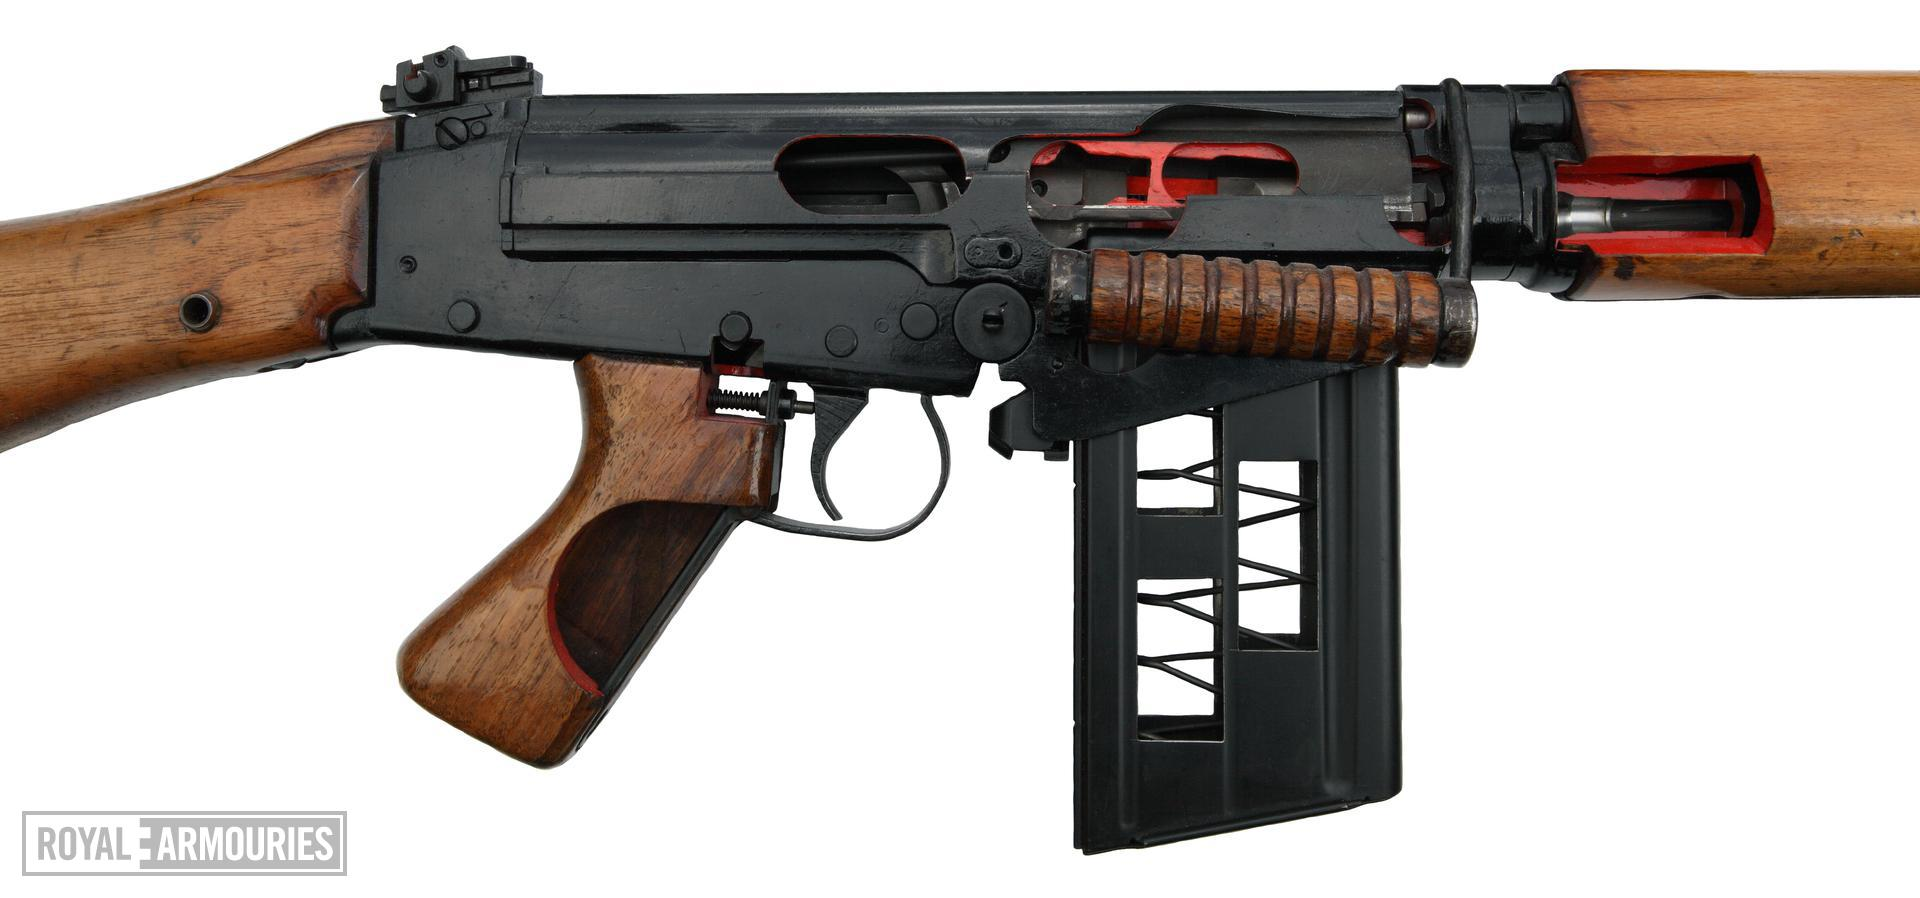 Centrefire self-loading instructional rifle - FN L23A1 Instructional model; a converted L1A1